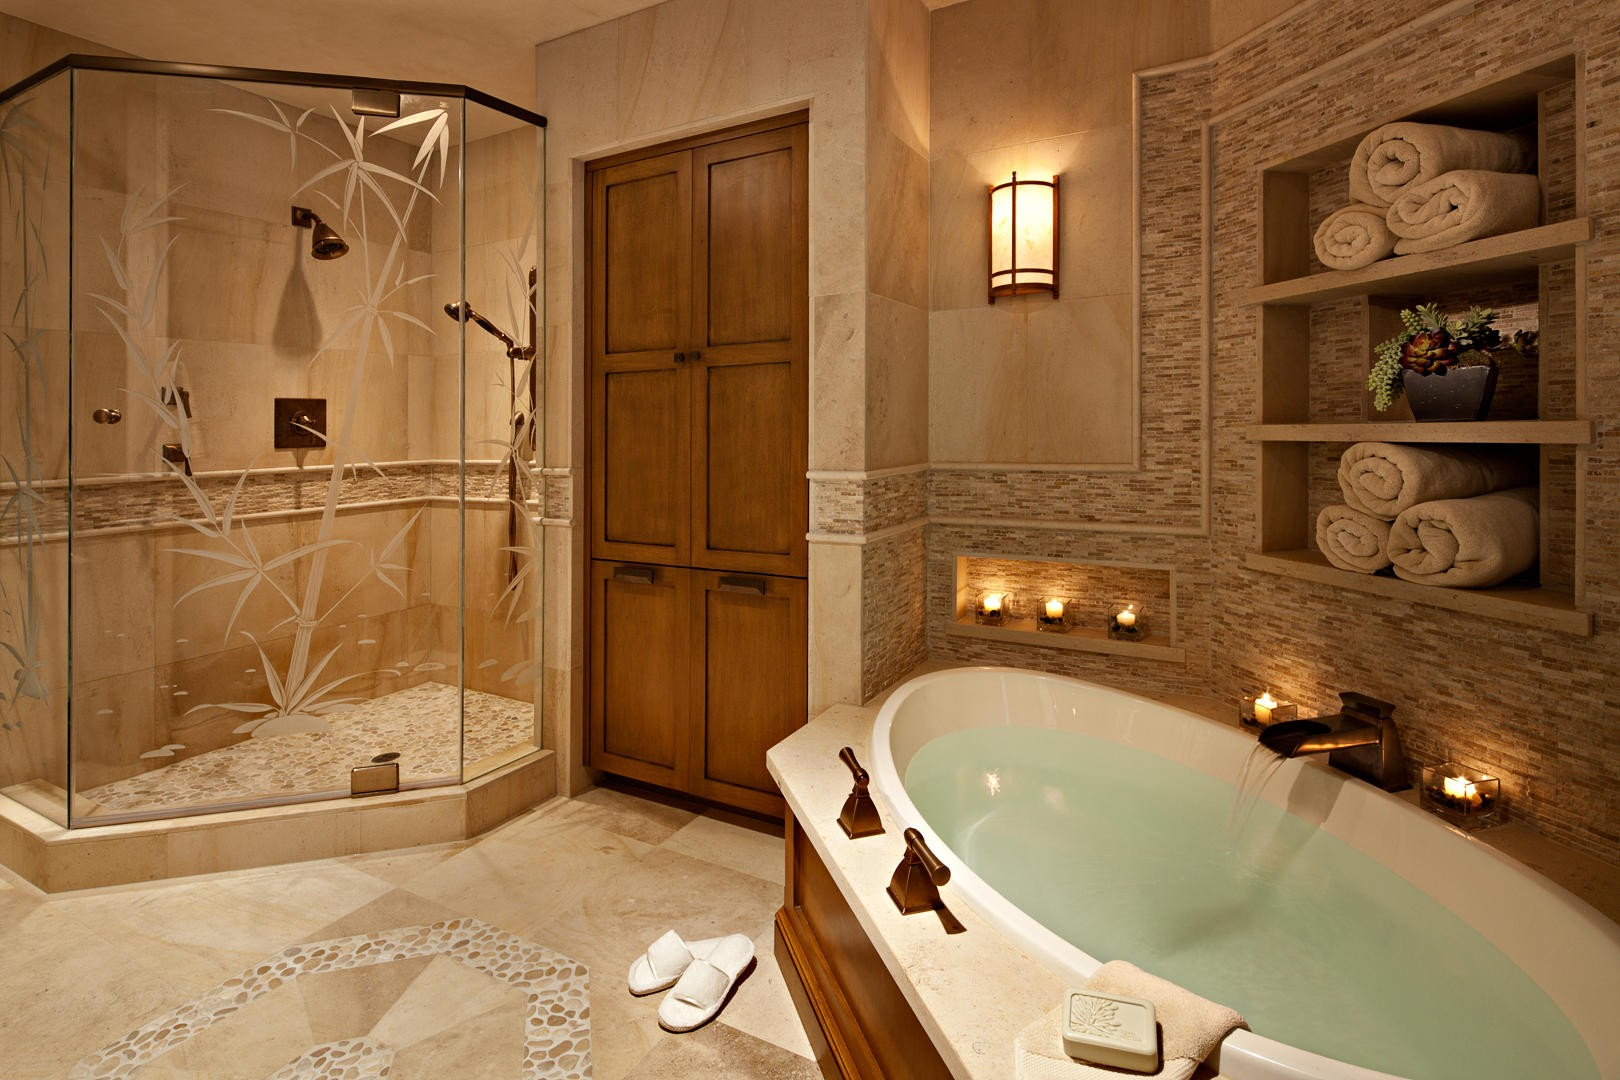 spa bathrooms pictures photo - 1